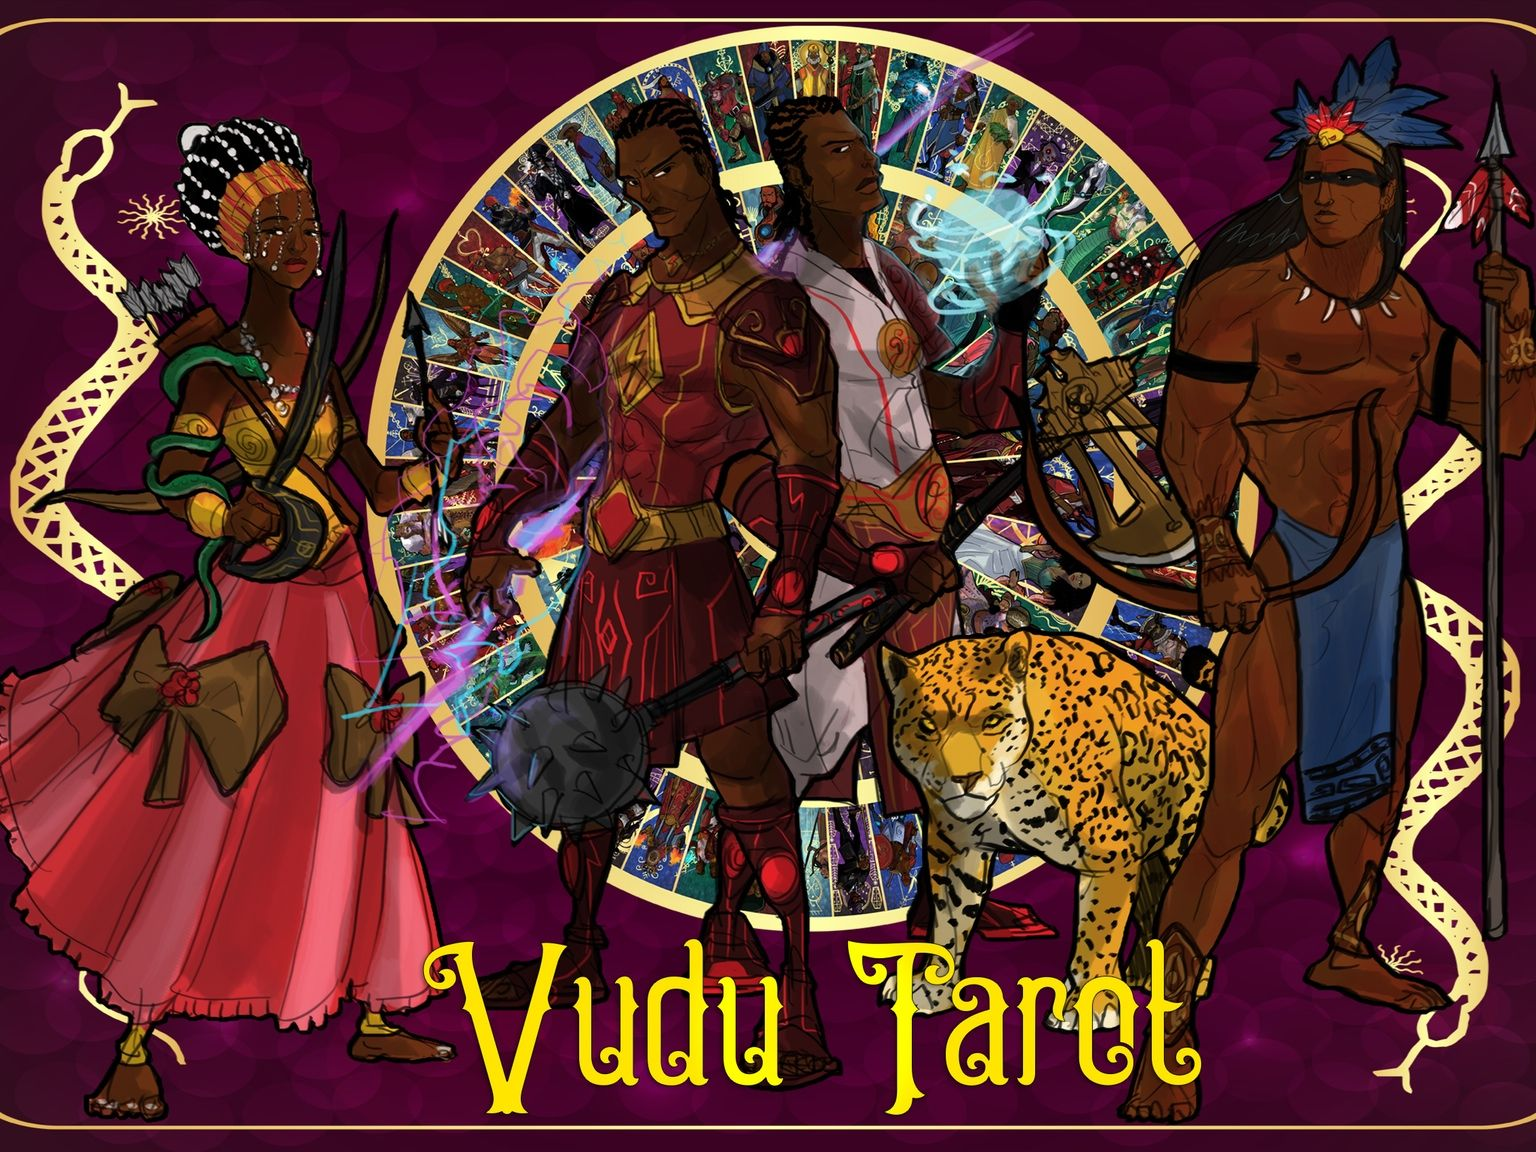 Indie selfpublishing of new voodoo tarot a comic book